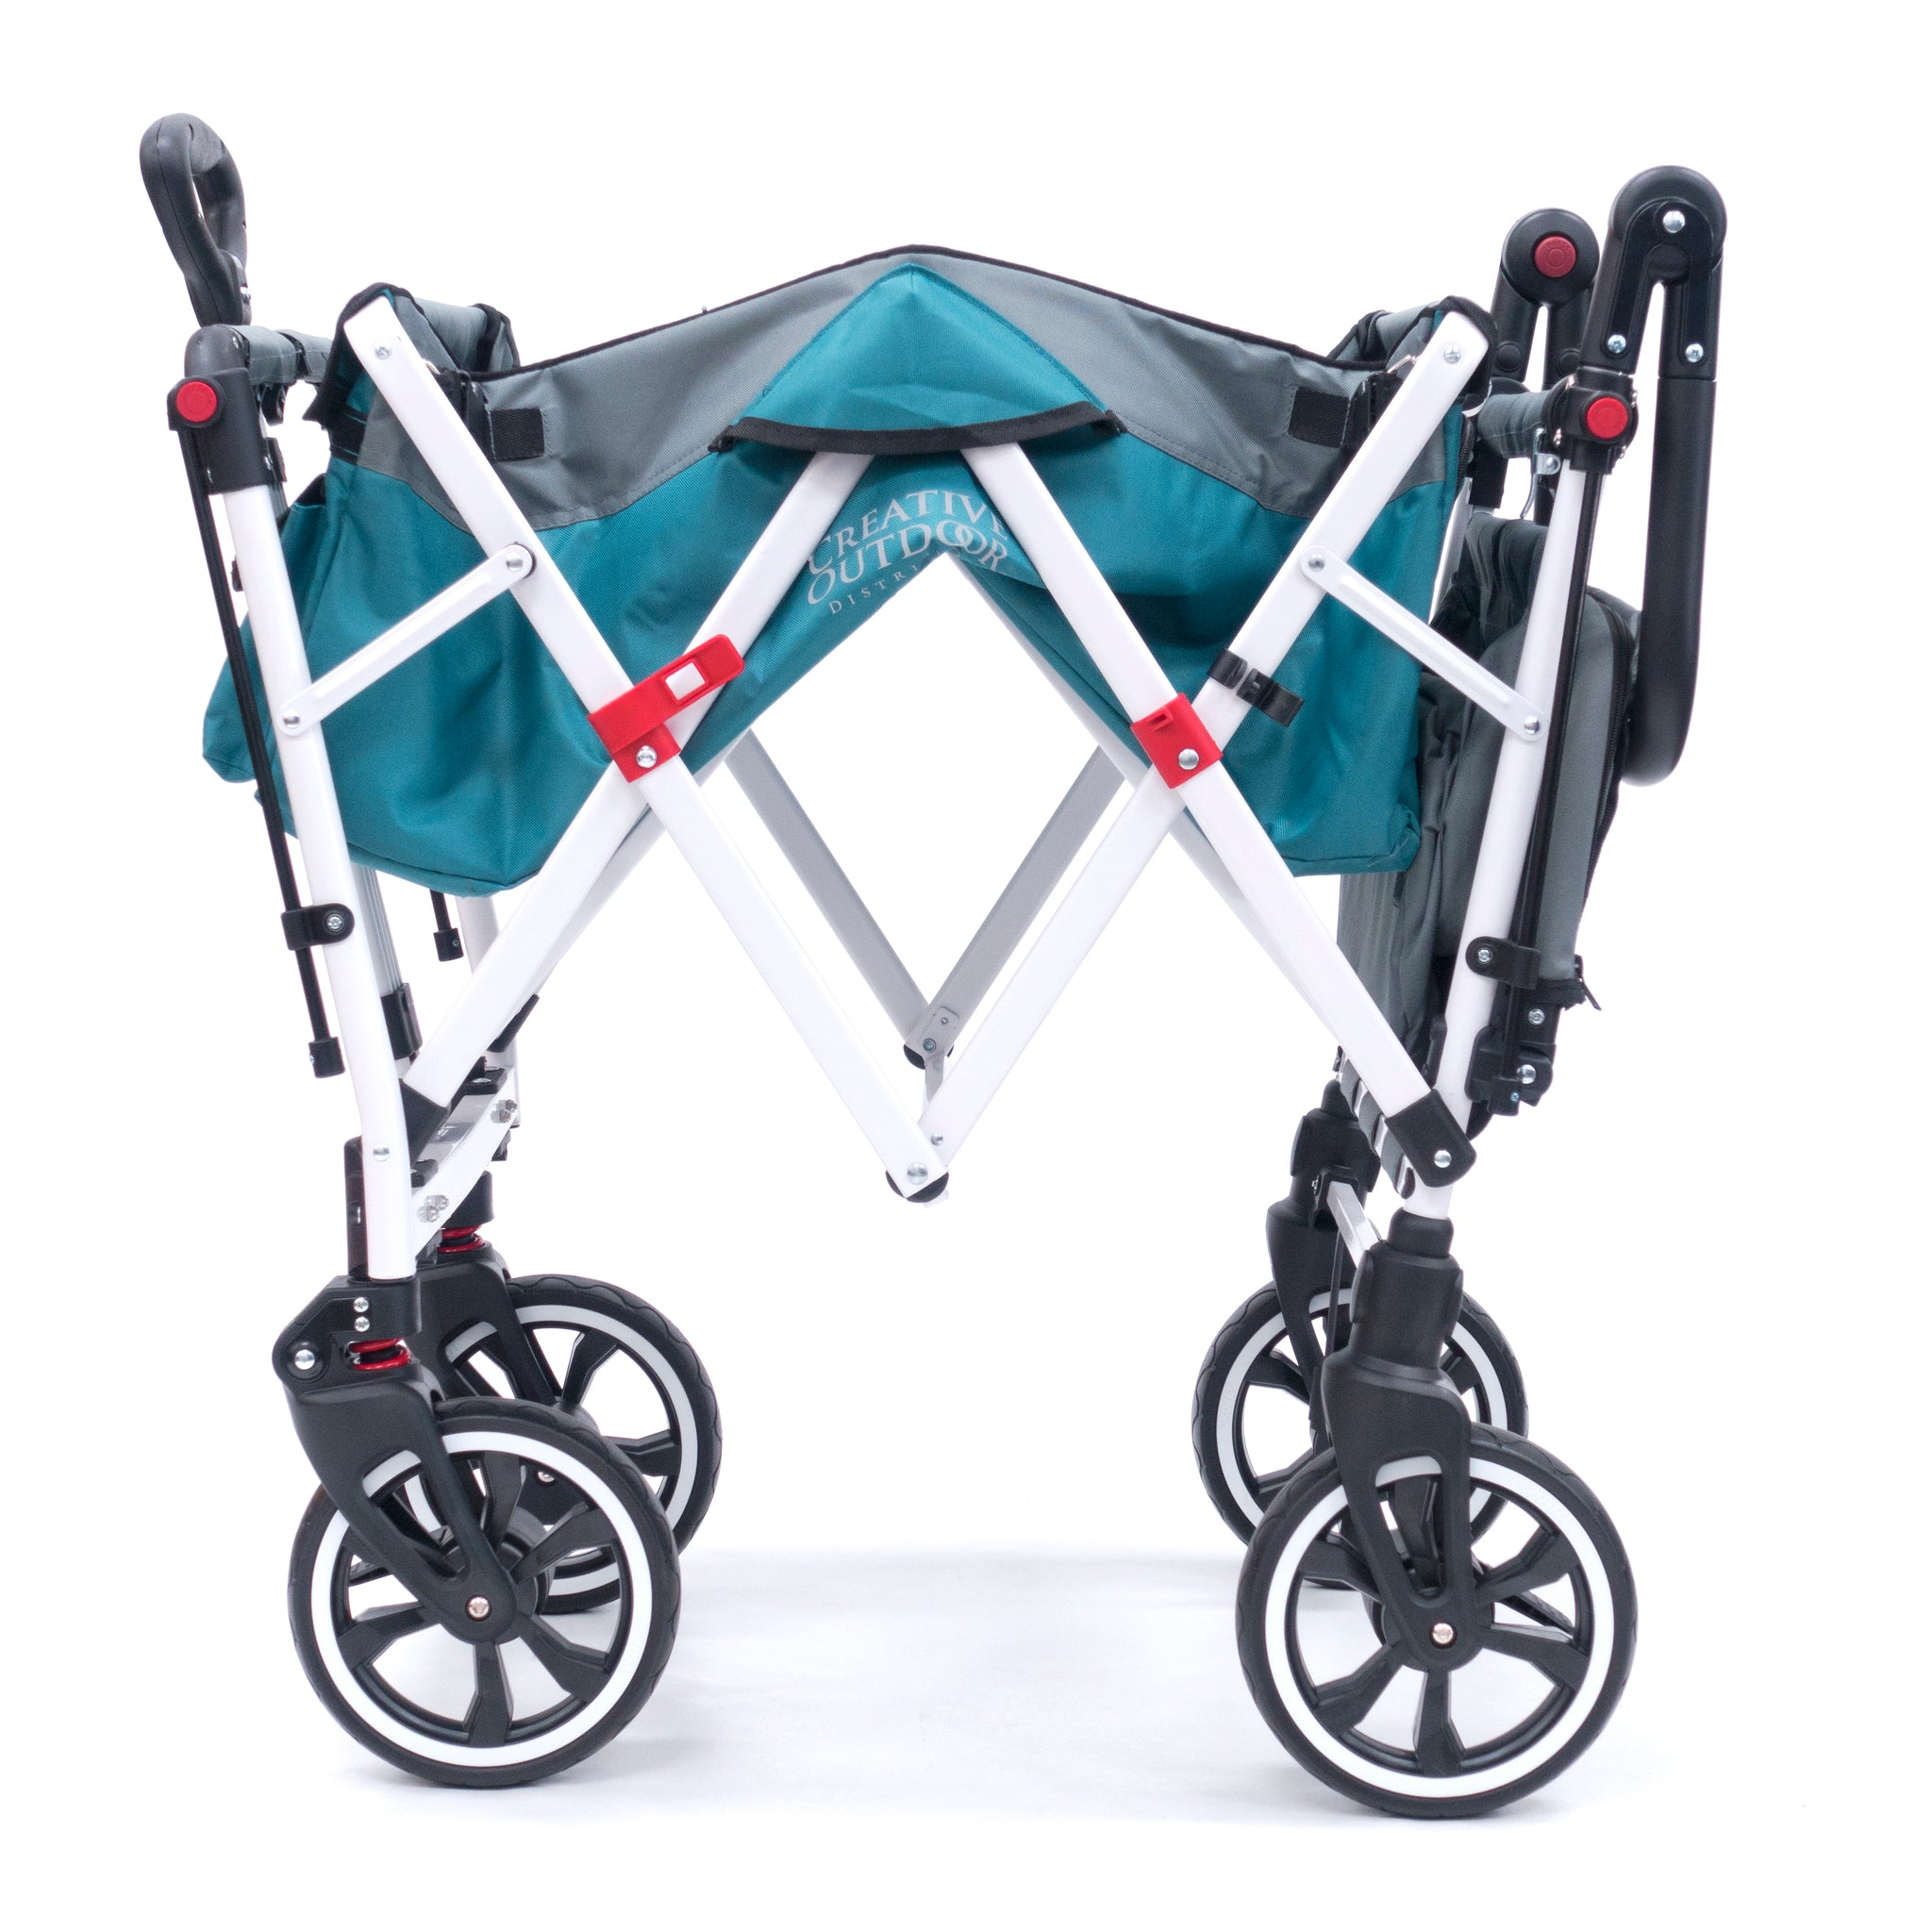 Push Pull TITANIUM SERIES PLUS Folding Wagon Stroller with Canopy | Teal